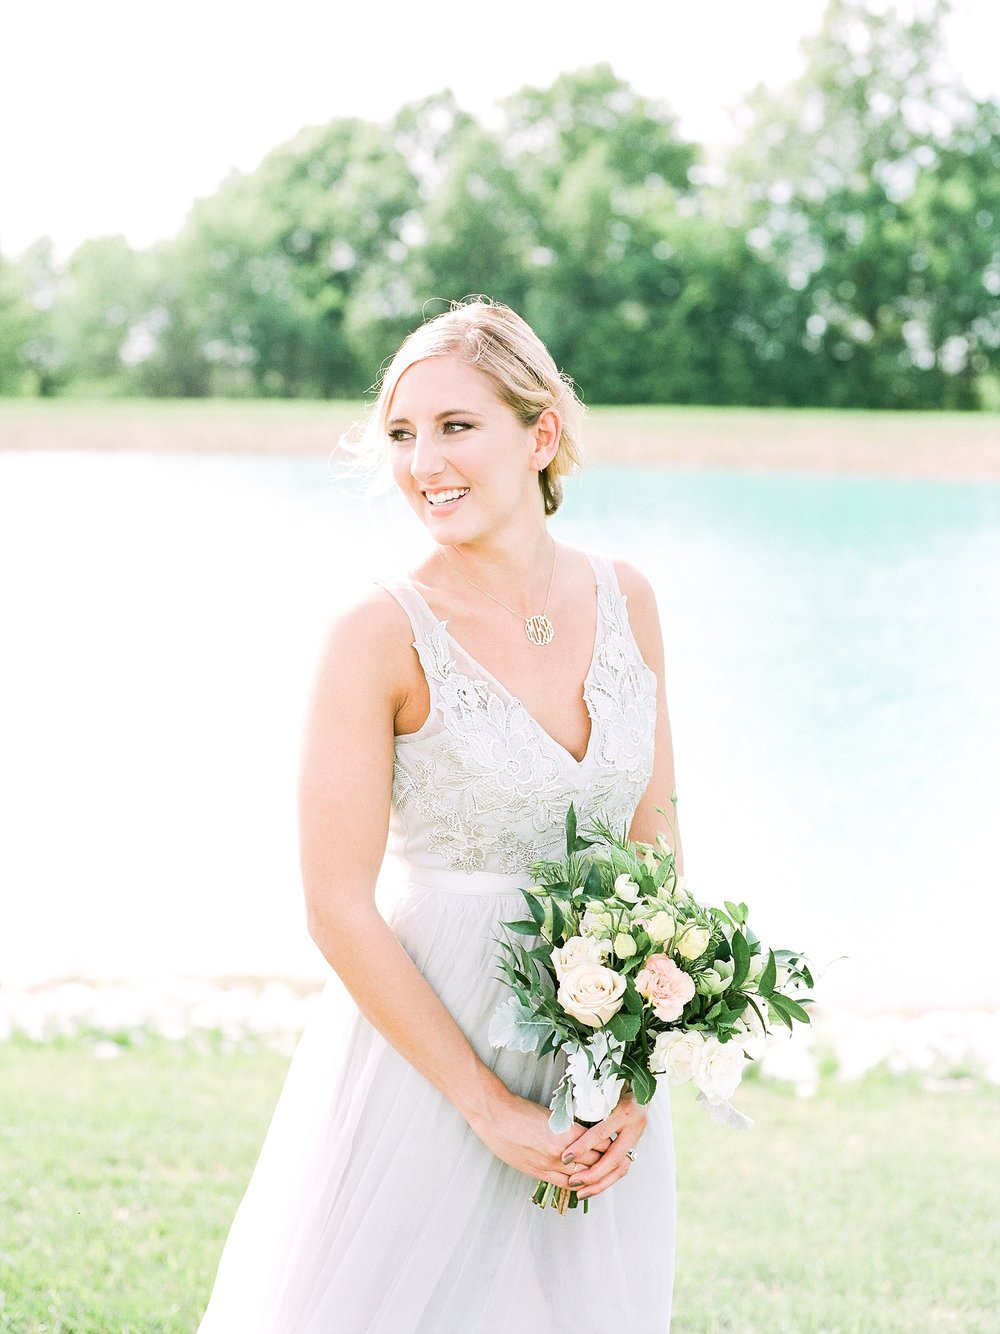 Textural Organic Wedding in All White Venue by Kelsi Kliethermes Wedding Photographer - Missouri, Midwest, and Destinations_0063.jpg